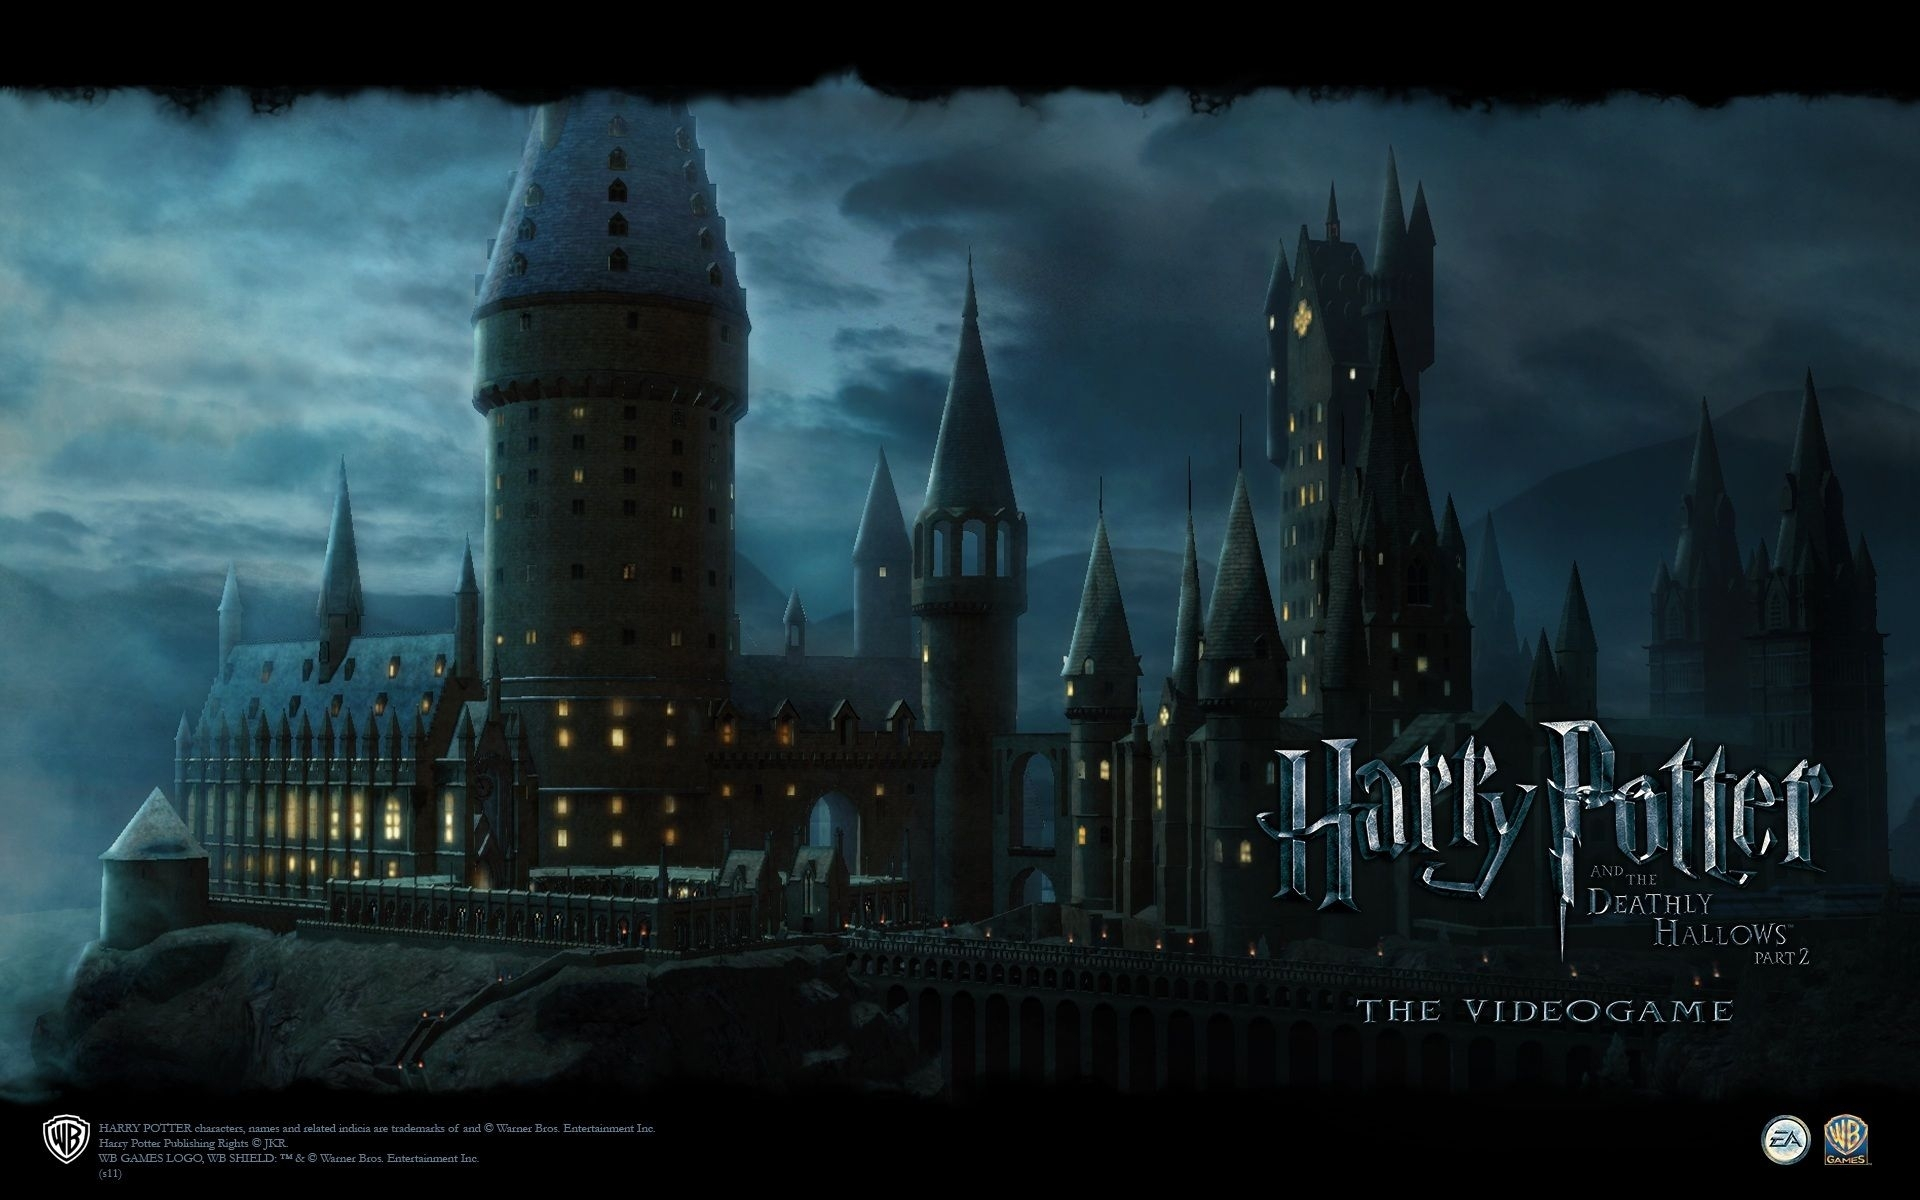 Most Inspiring Wallpaper Harry Potter Full Hd - harry-potter-wallpapers-full-hd-wallpaper-search-tv-and-movie  Collection_266869.jpg